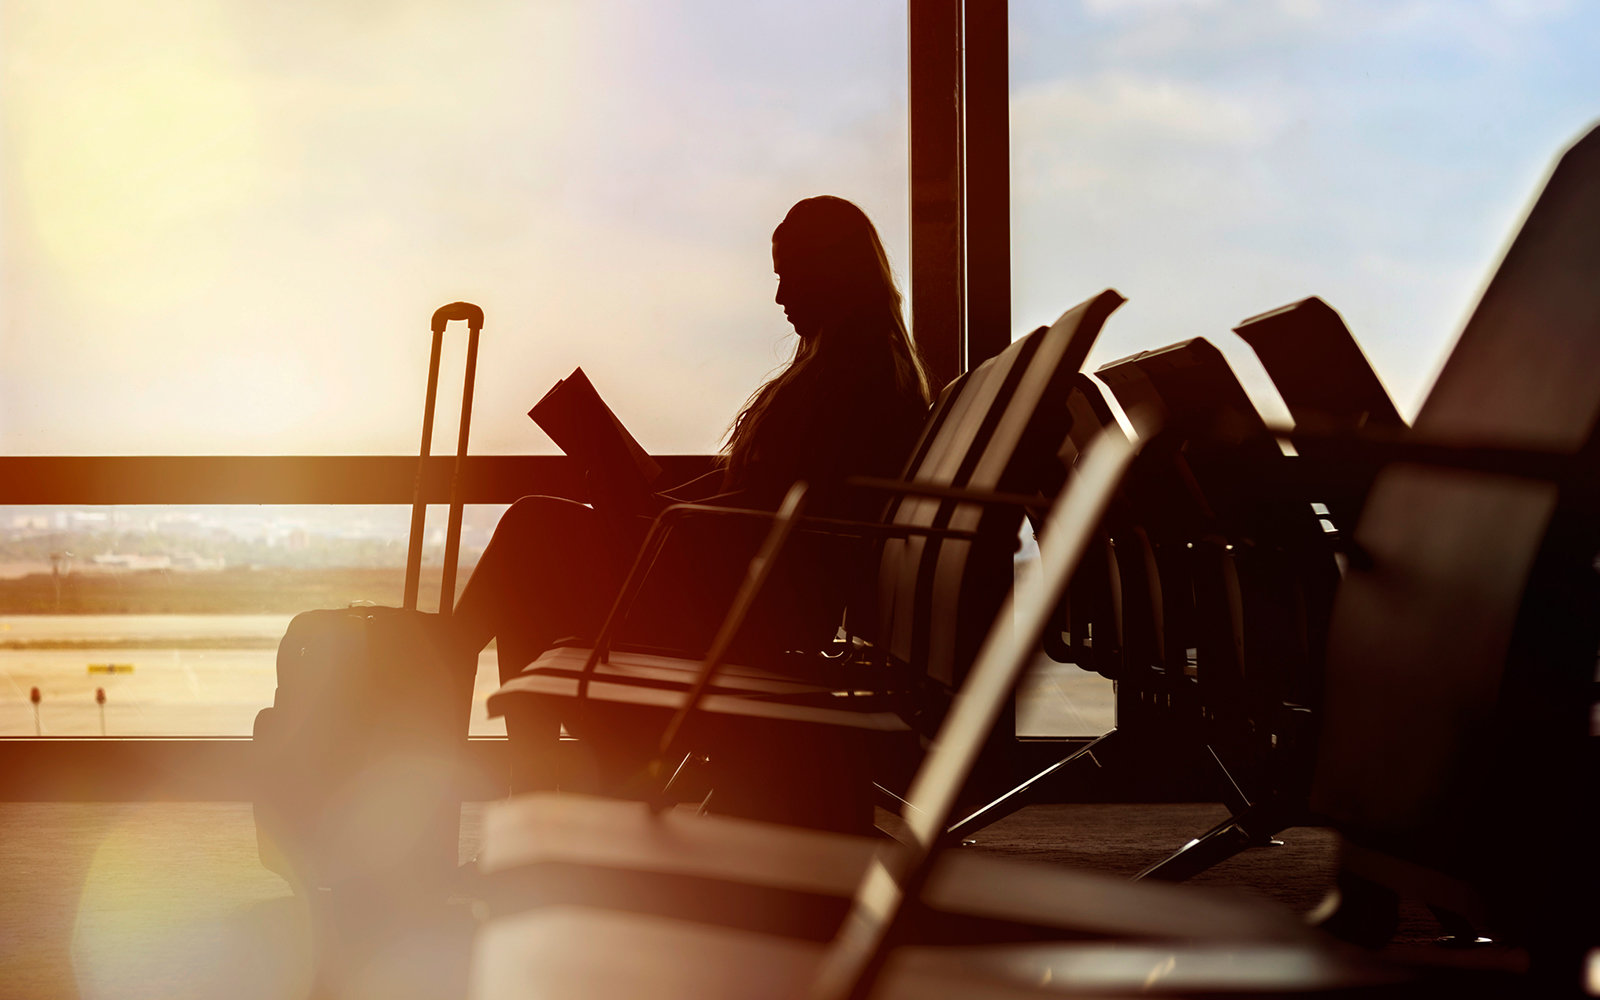 side view of woman waiting in airport